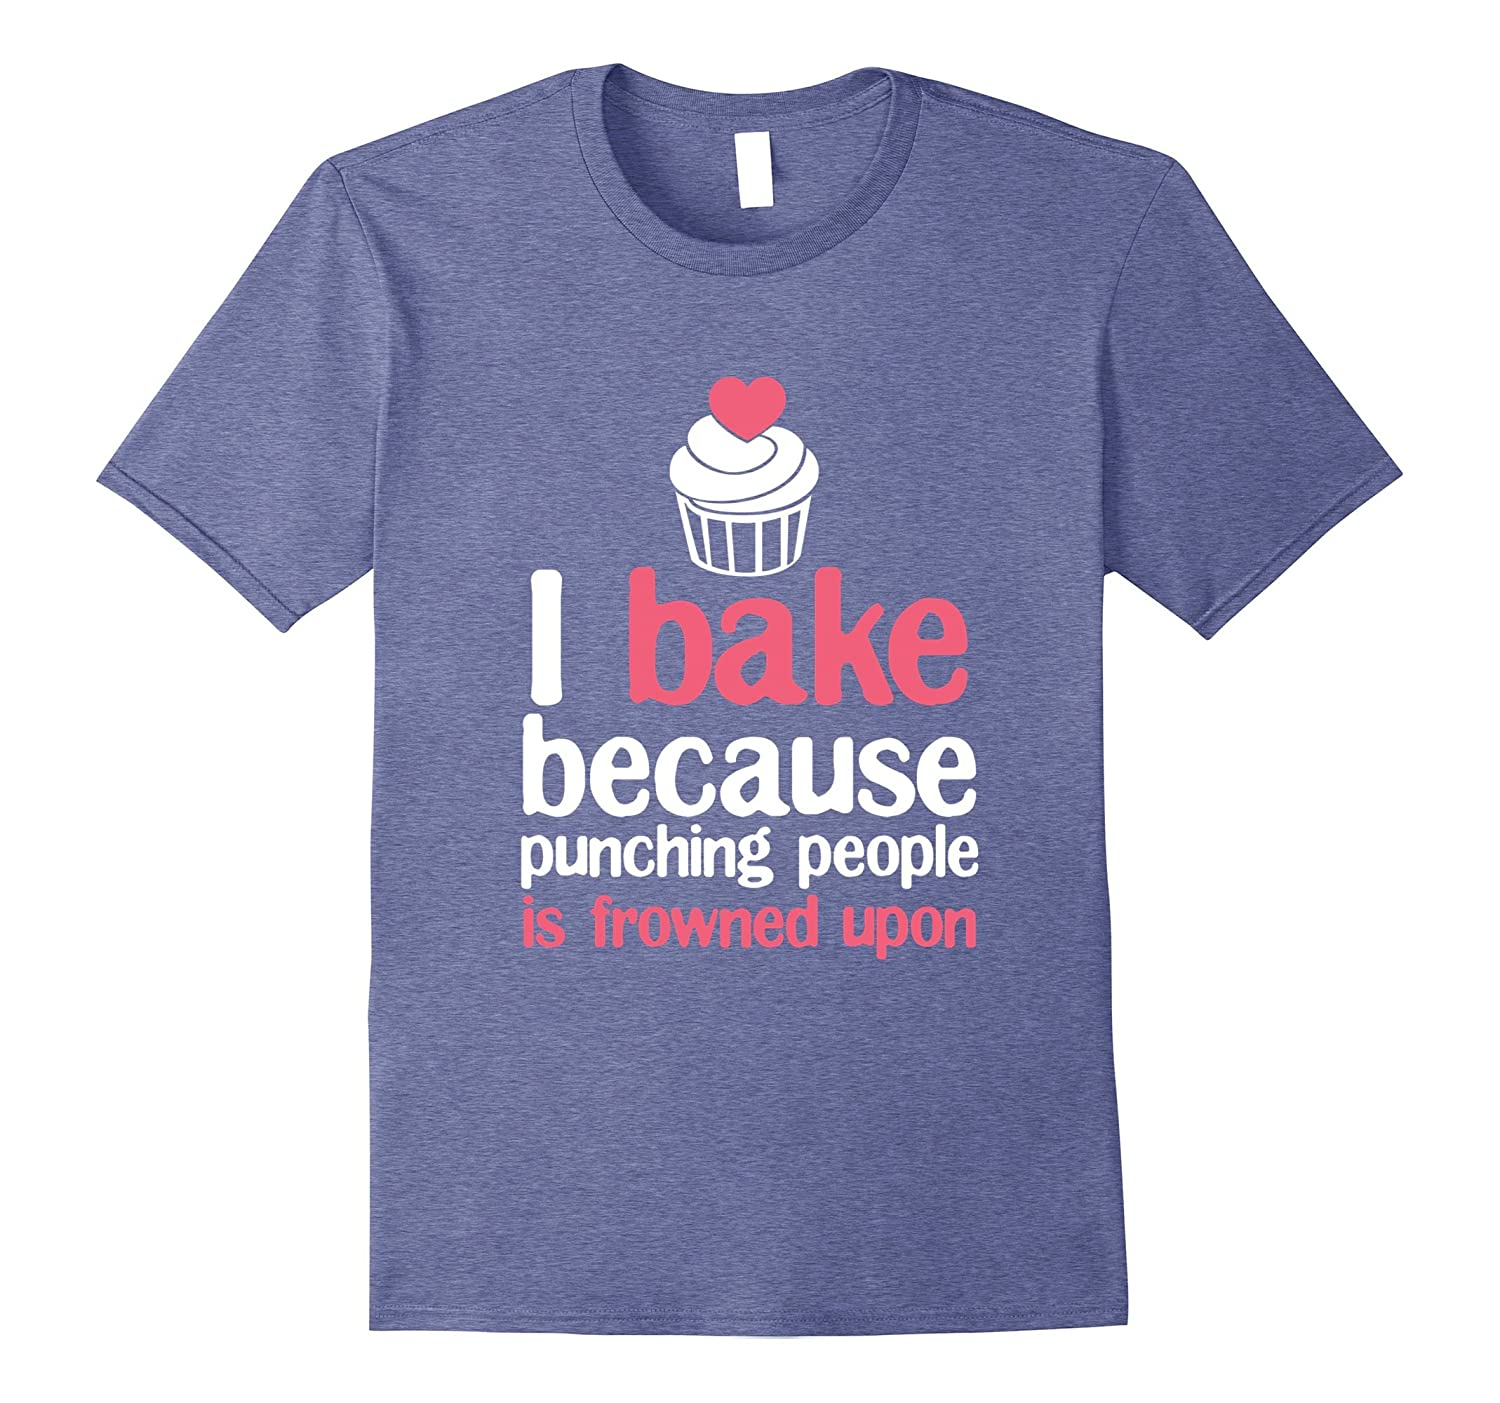 ff0415c17 I Bake Because Punching People is Frowned Upon T-Shirt-TD – theteejob